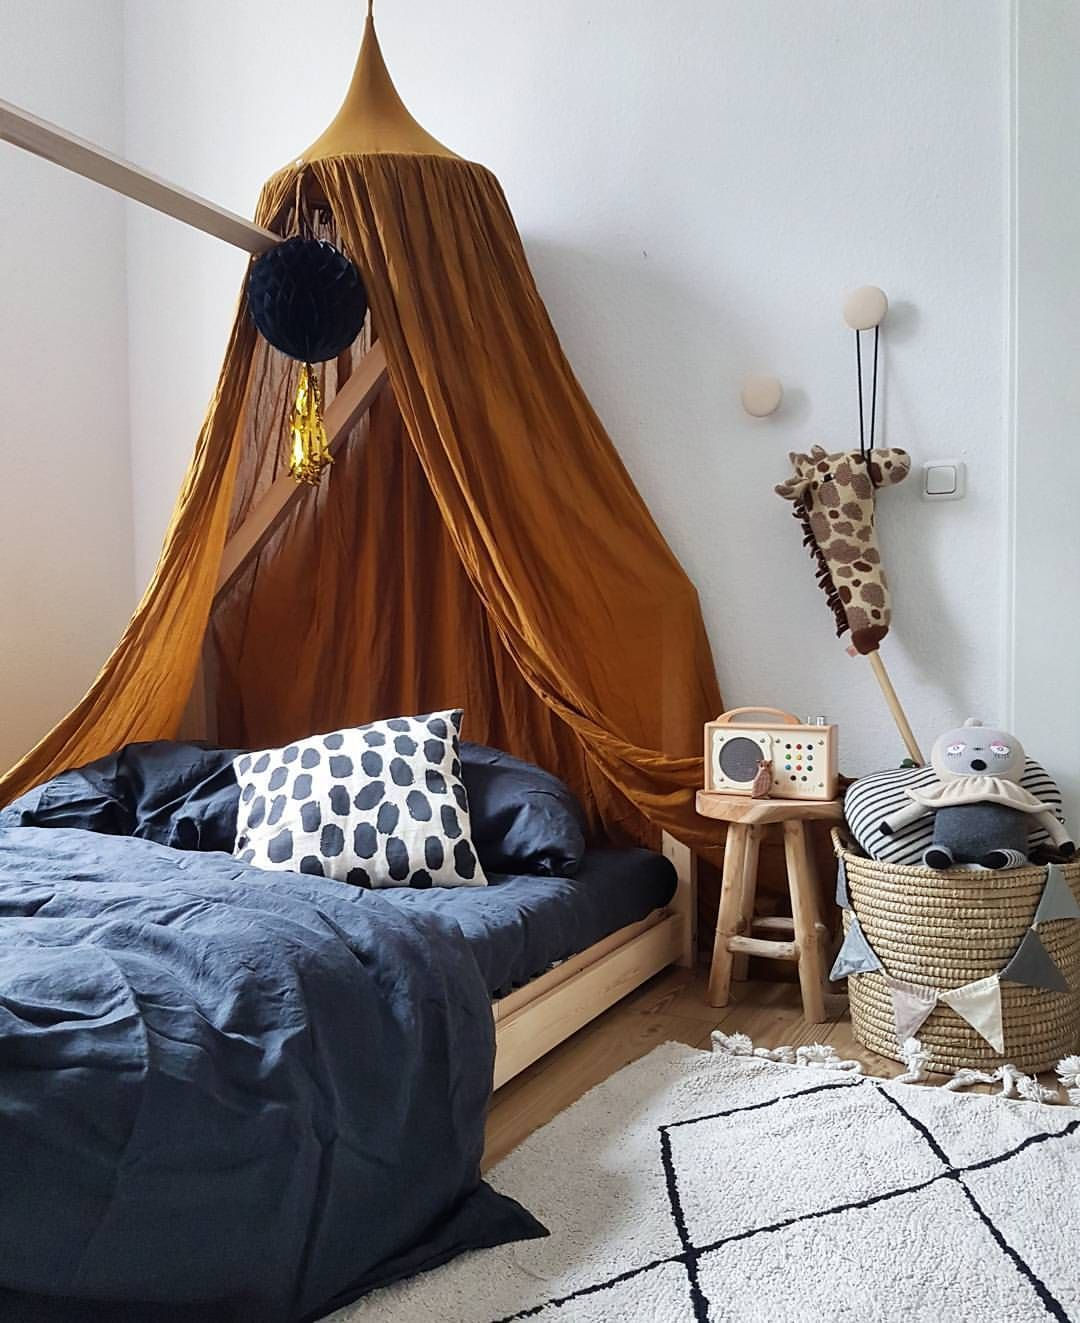 Luxury Blue Canopy for Bed